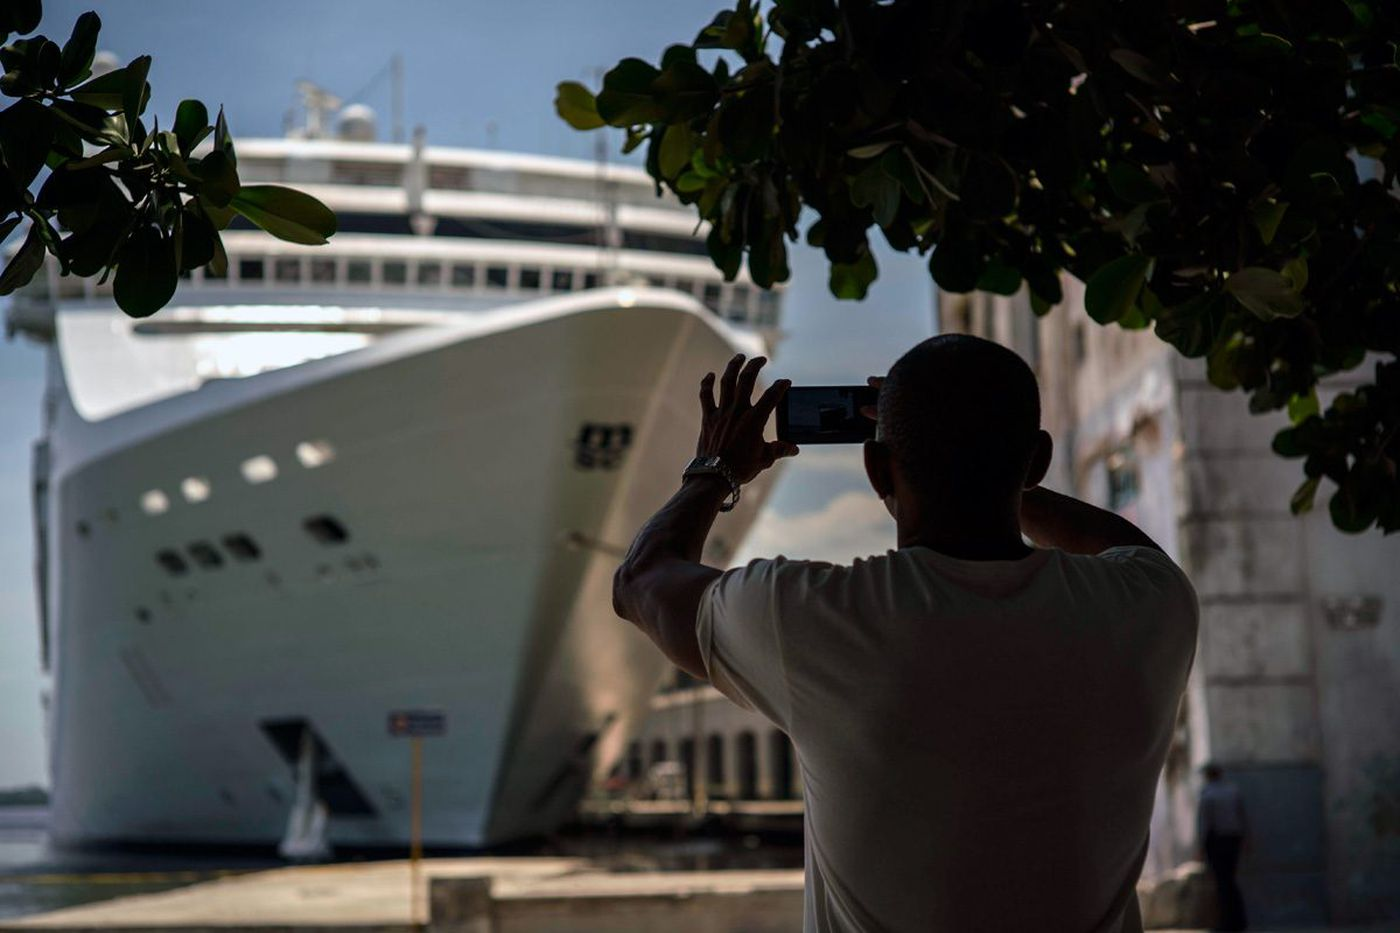 White House implements new Cuba policy restricting travel and trade